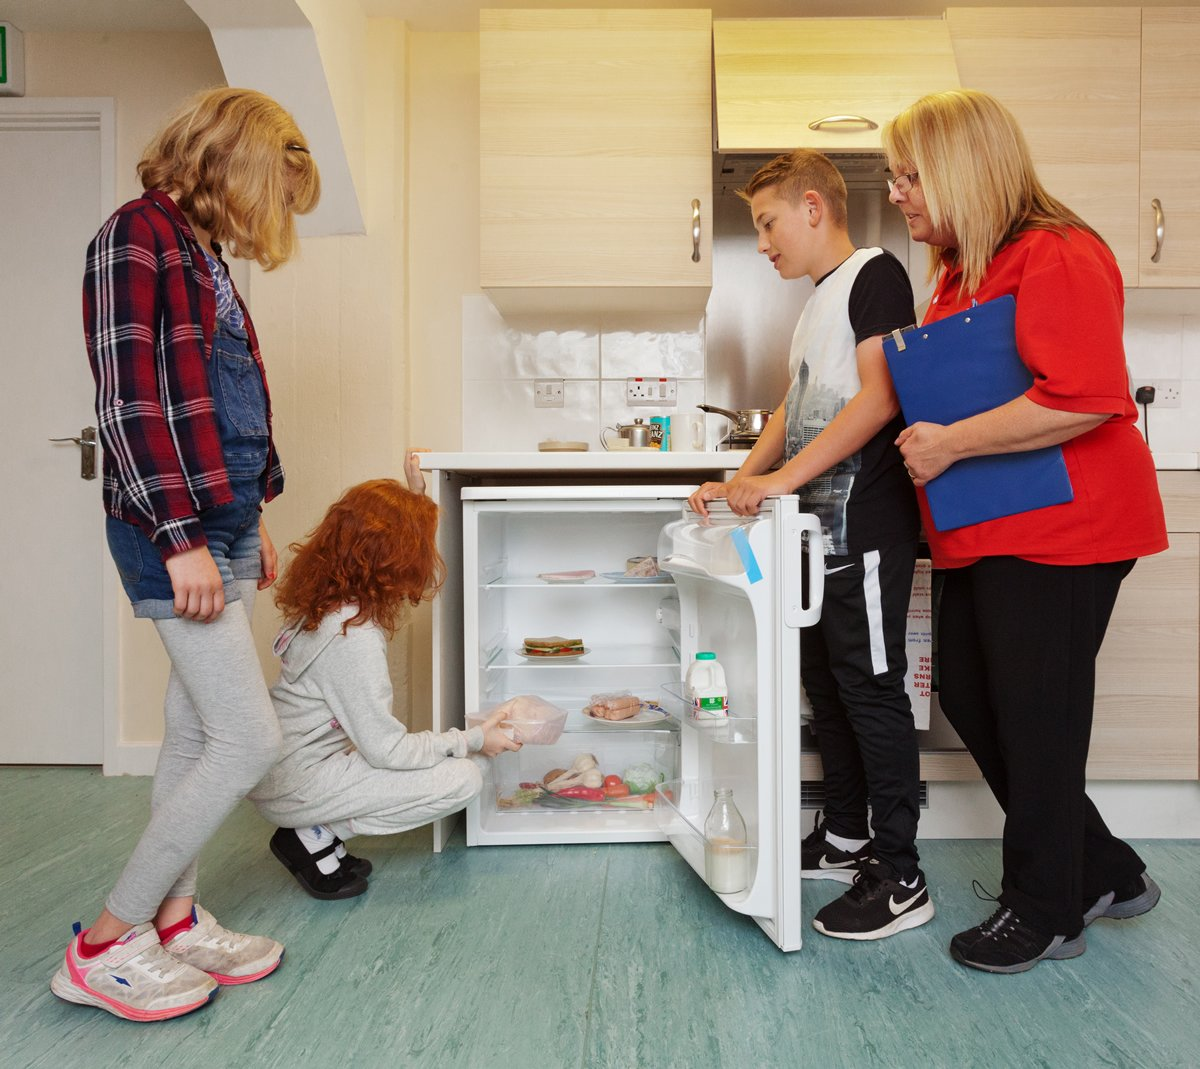 Children looking at the contents of a fridge